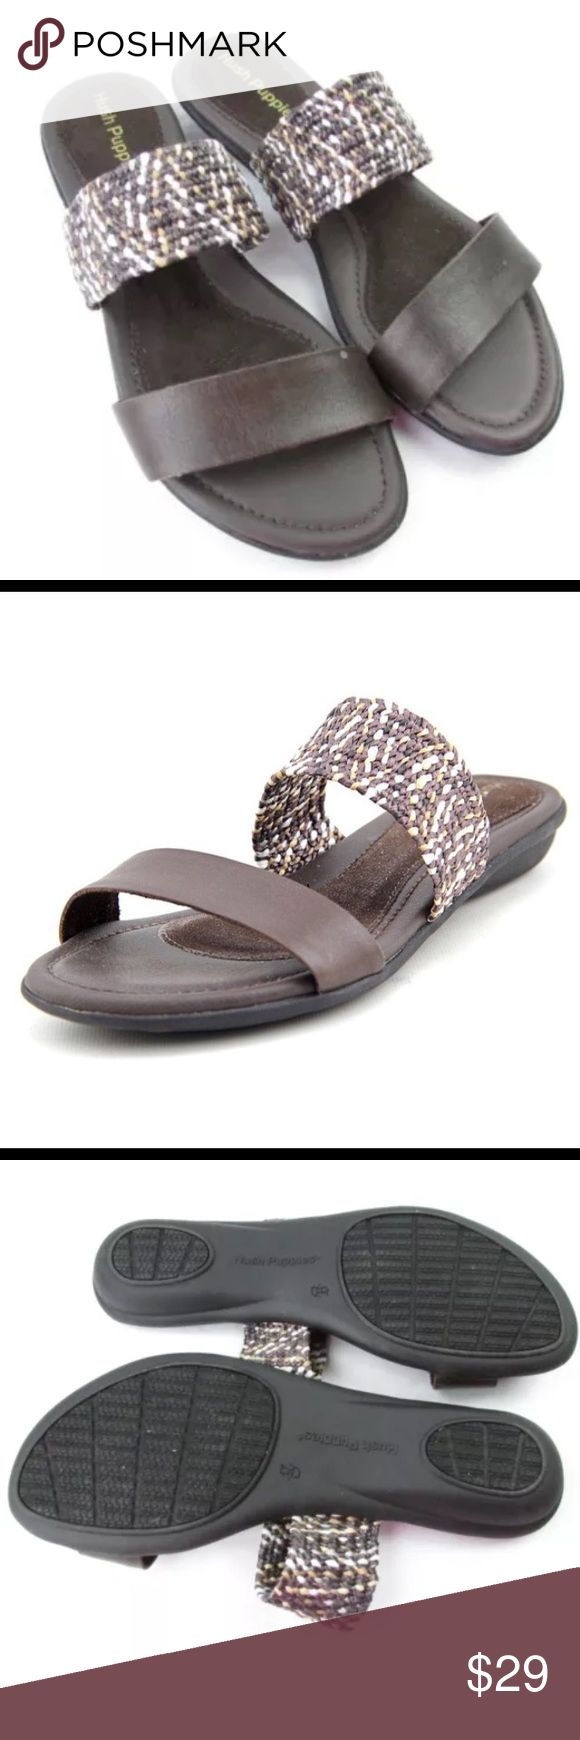 Hush puppies Brown Slip On Sandals Hush Puppies Brown Slip On Sandals. Size 8. In very good condition. Worn 2 times. These are very comfortable but unfortunately they are slightly to big for me. They do run true to size (my opinion) Hush Puppies Shoes Sandals